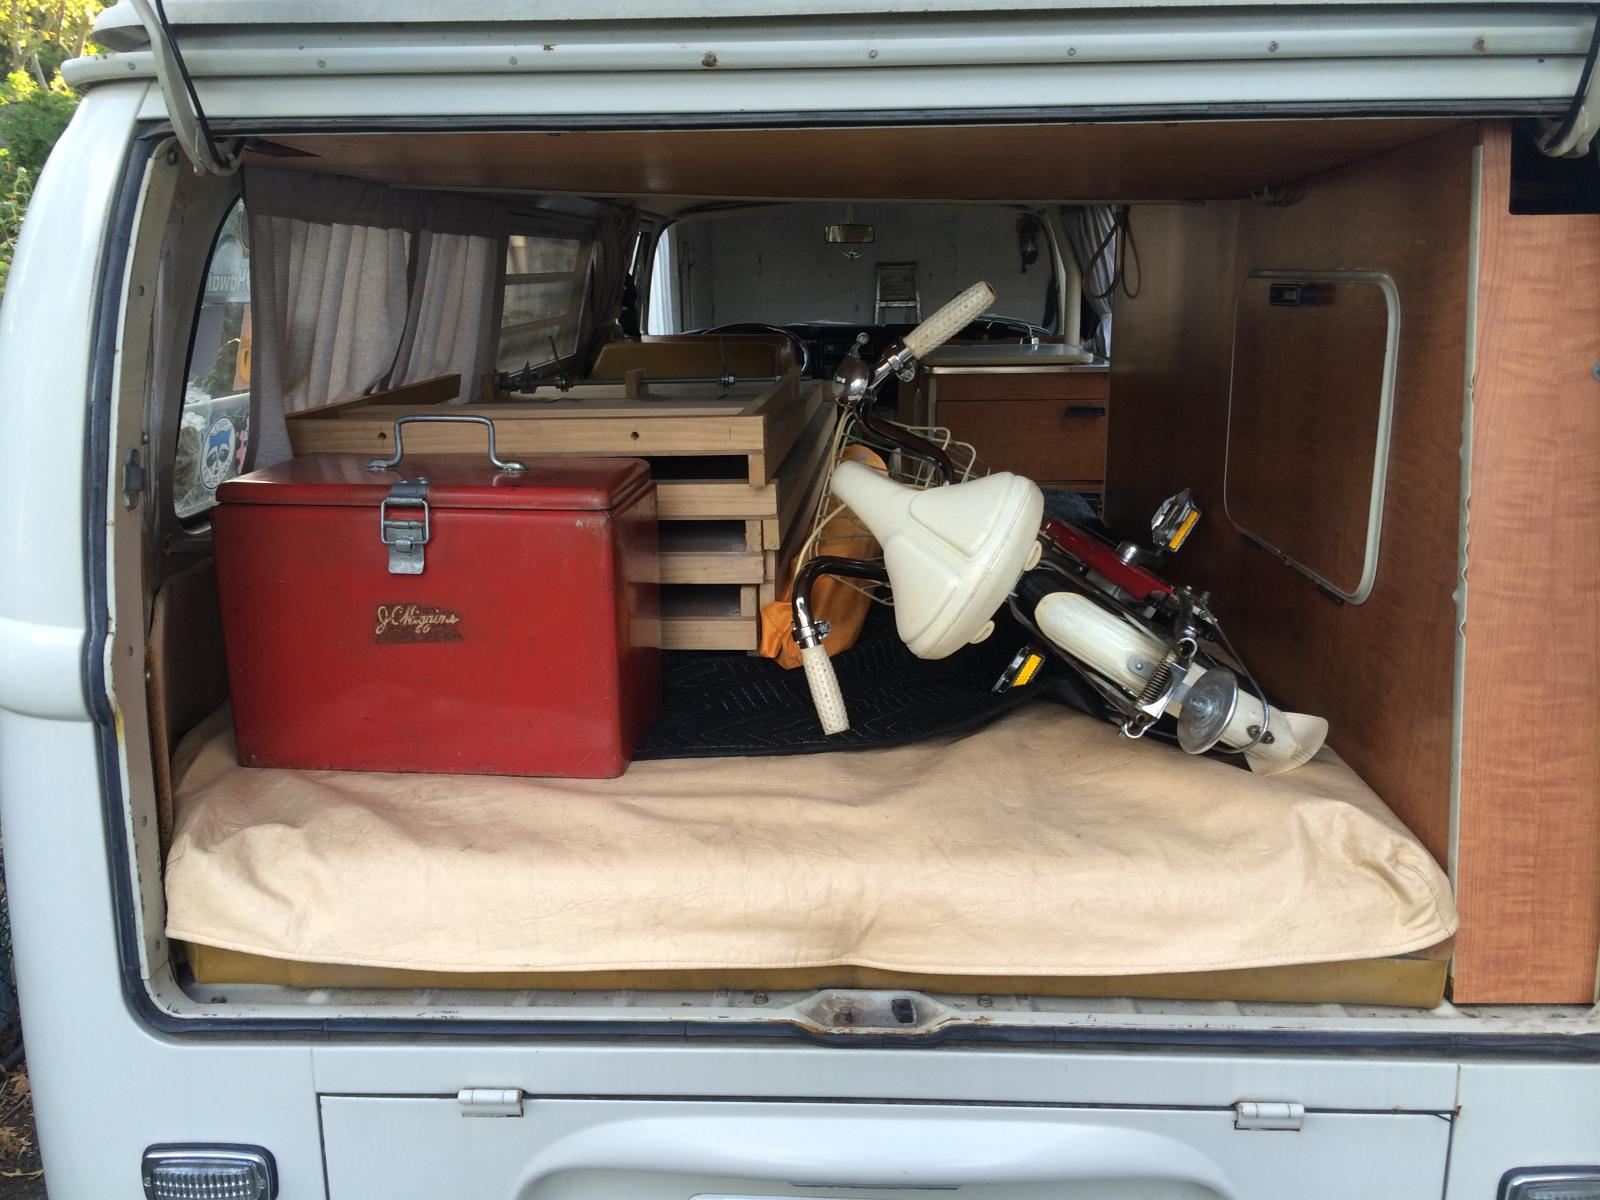 '70 Camper loaded up for the AACG